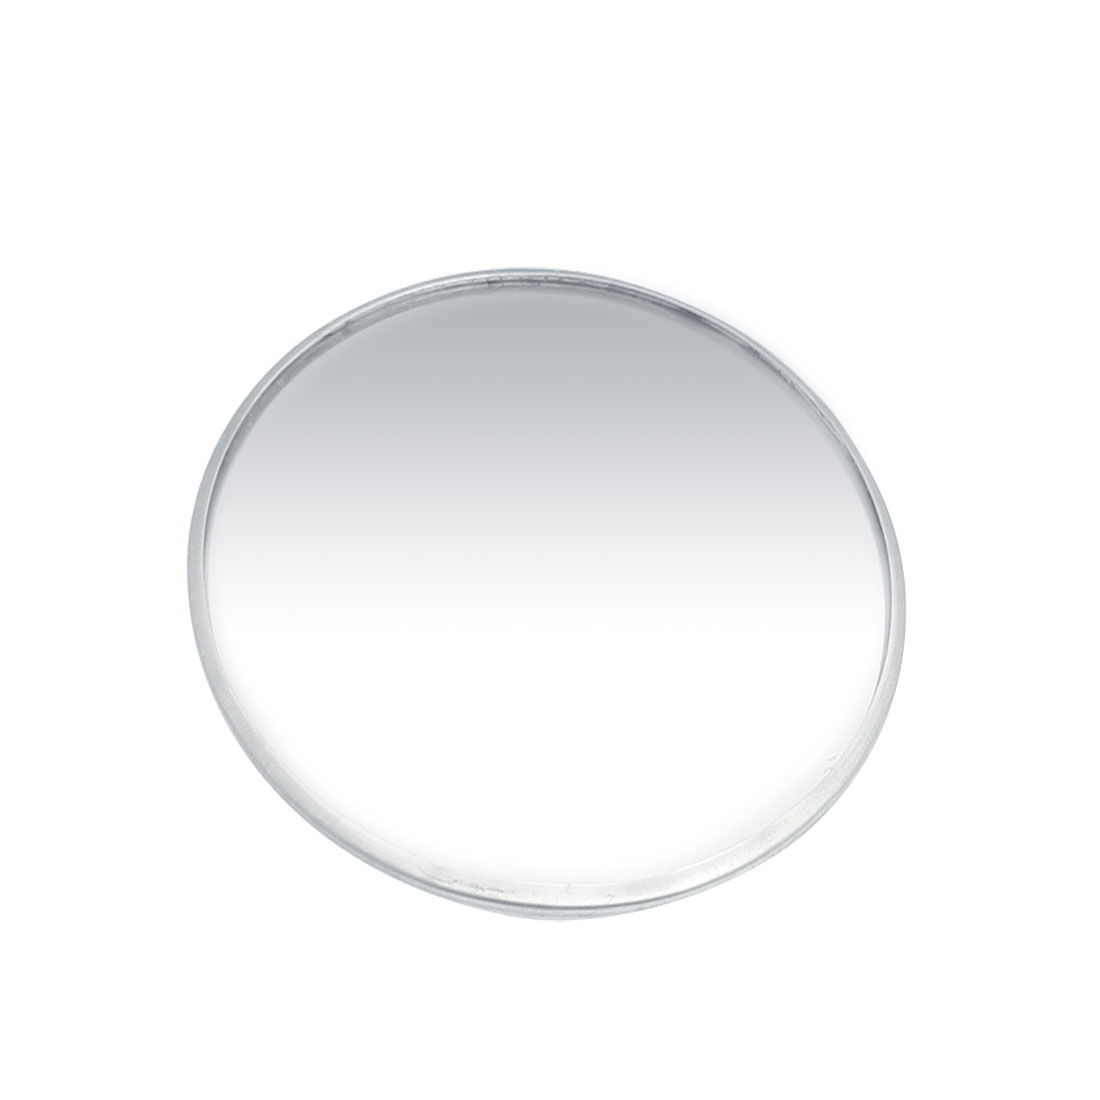 "Adhesive 3"" Round Side Rearview Blind Spot Mirror Silver Tone for Car"